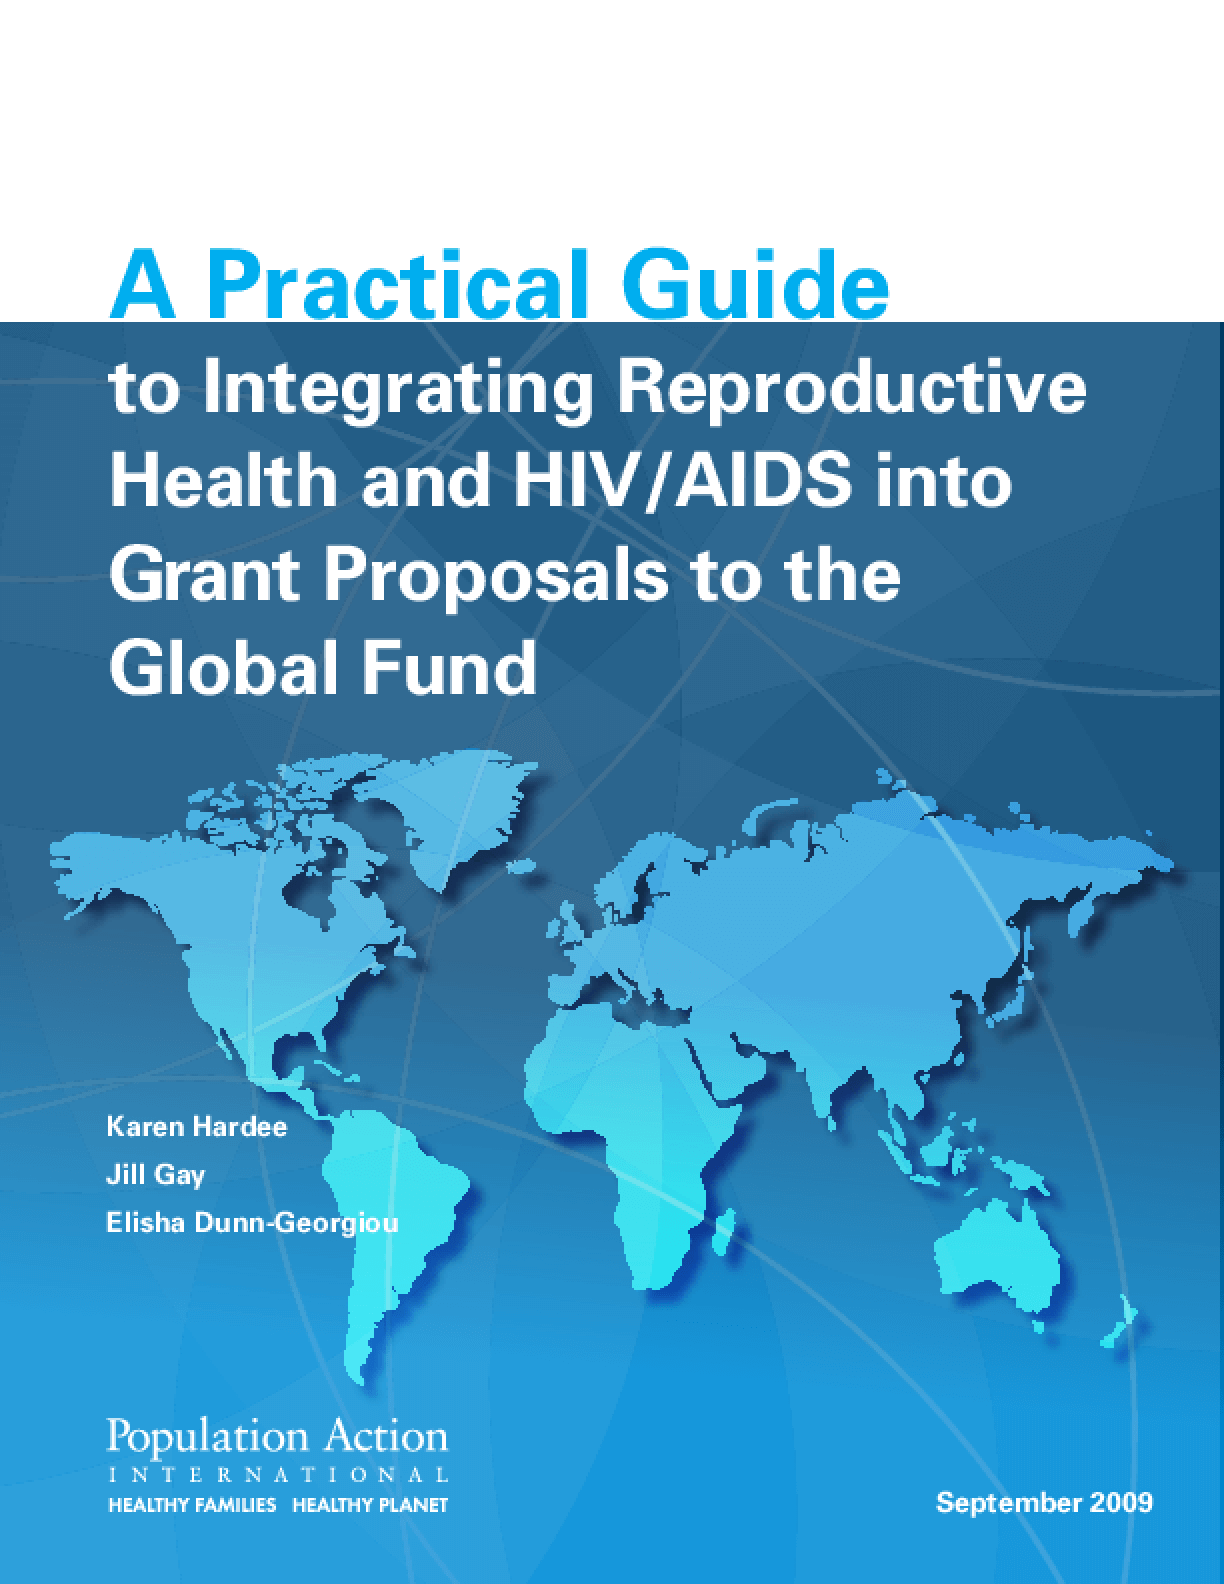 A Practical Guide to Integrating Reproductive Health and HIV/AIDS into Grant Proposals to the Global Fund